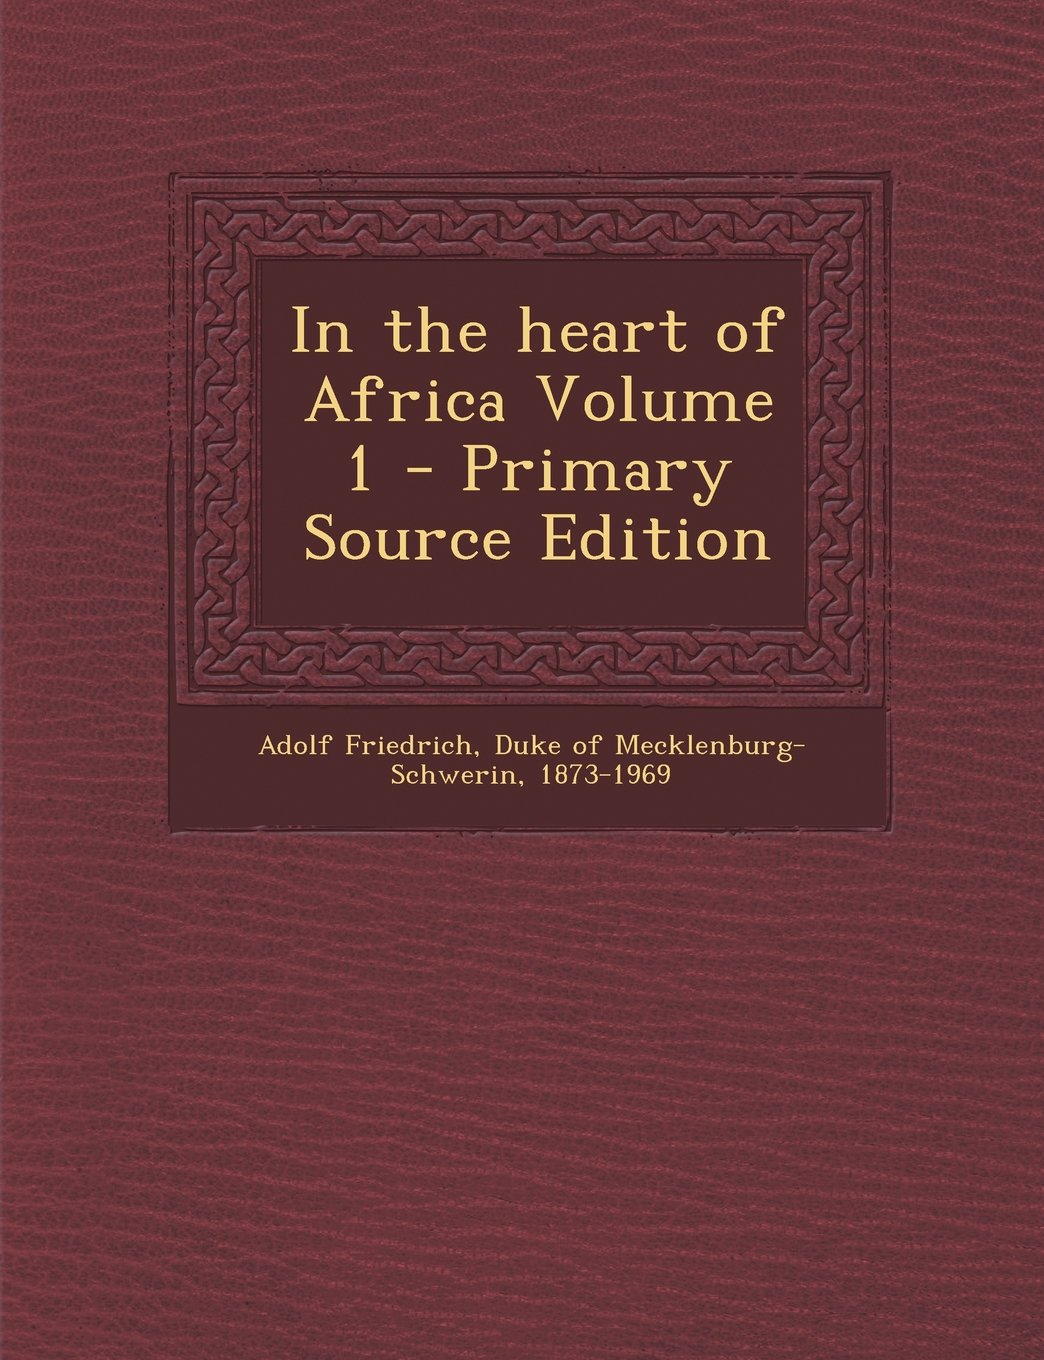 In the heart of Africa Volume 1 - Primary Source Edition PDF